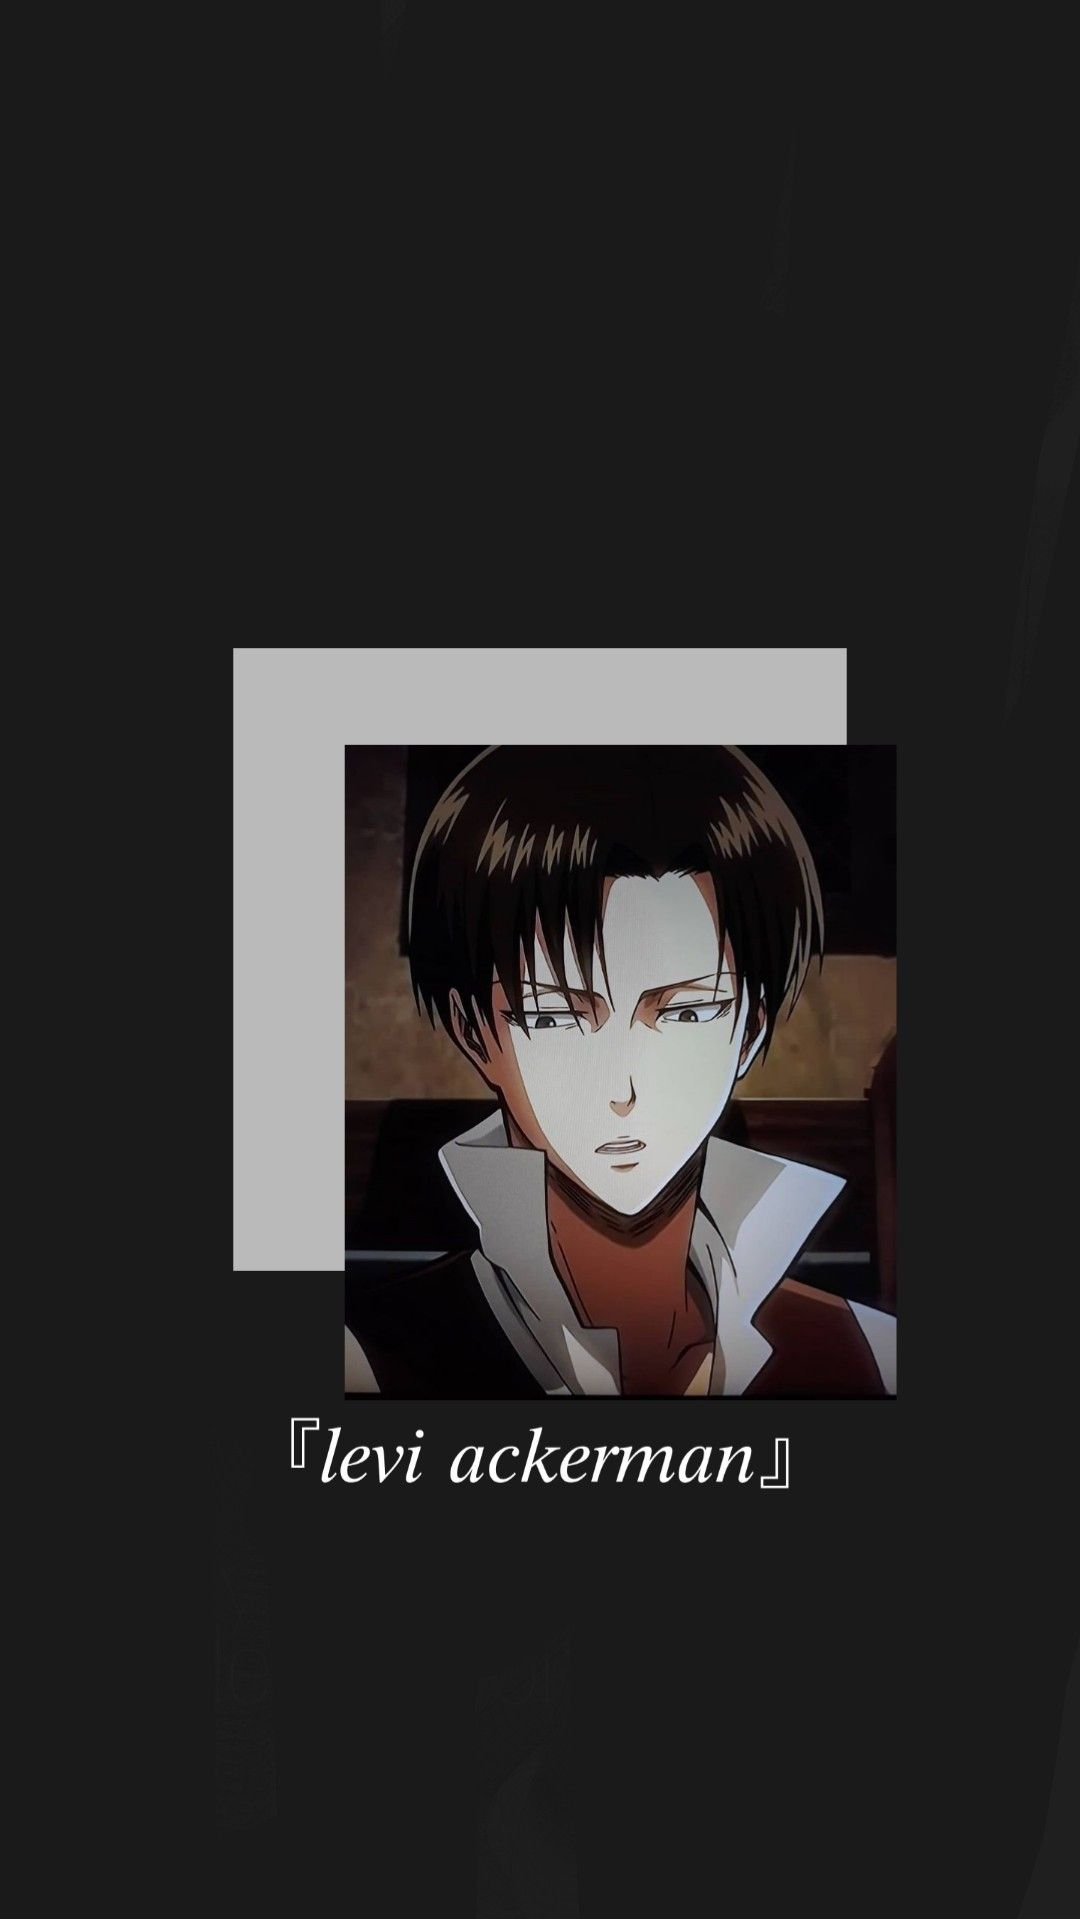 Levi Ackerman Wallpaper Cute Anime Wallpaper Cool Anime Pictures Attack On Titan Anime